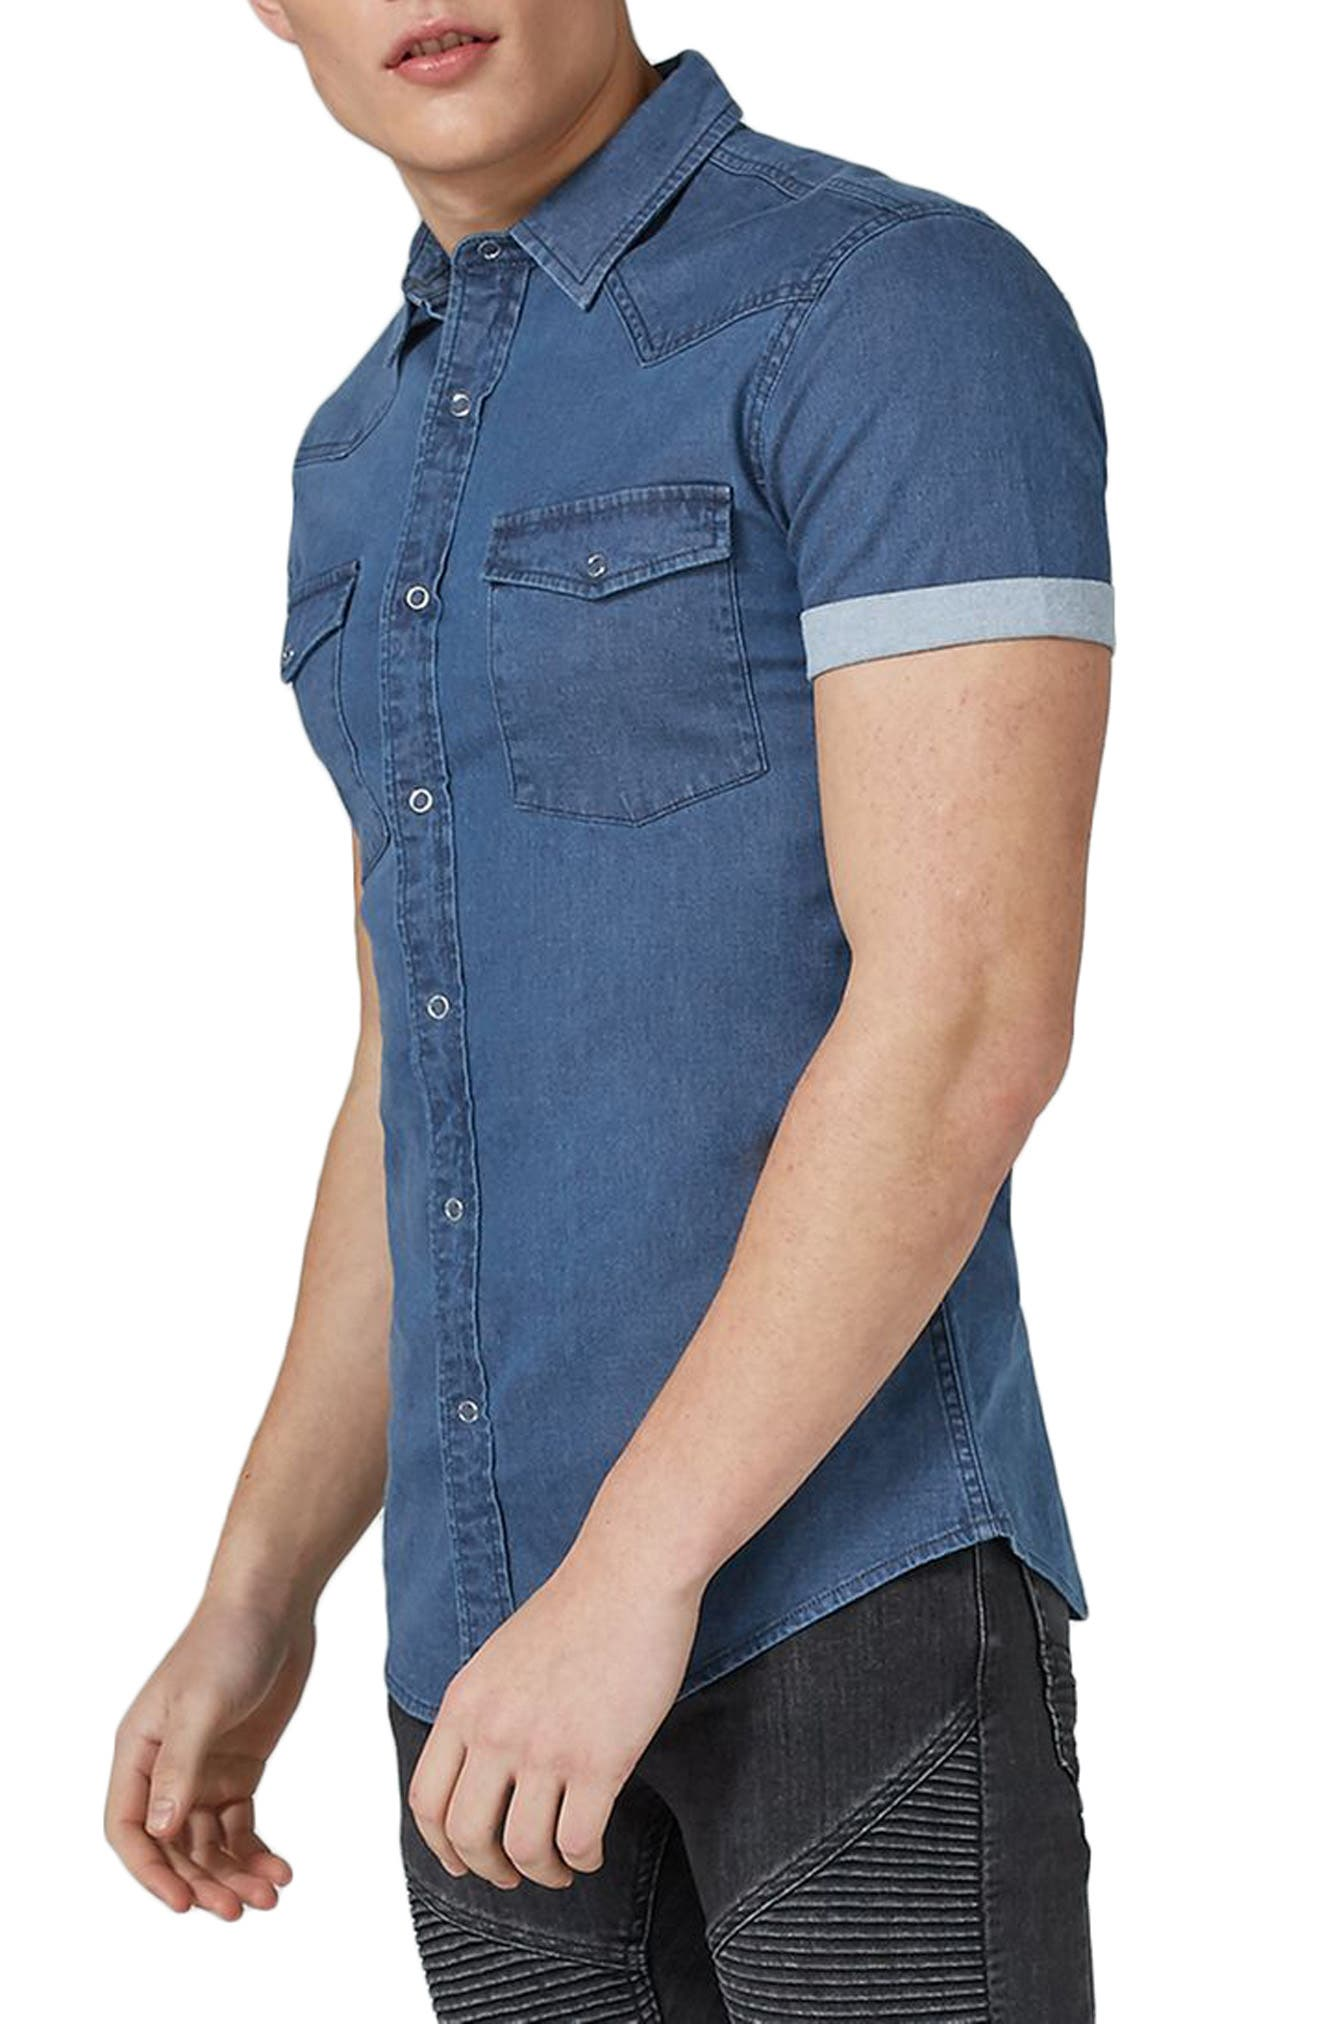 Muscle Fit Denim Shirt,                             Main thumbnail 1, color,                             Blue